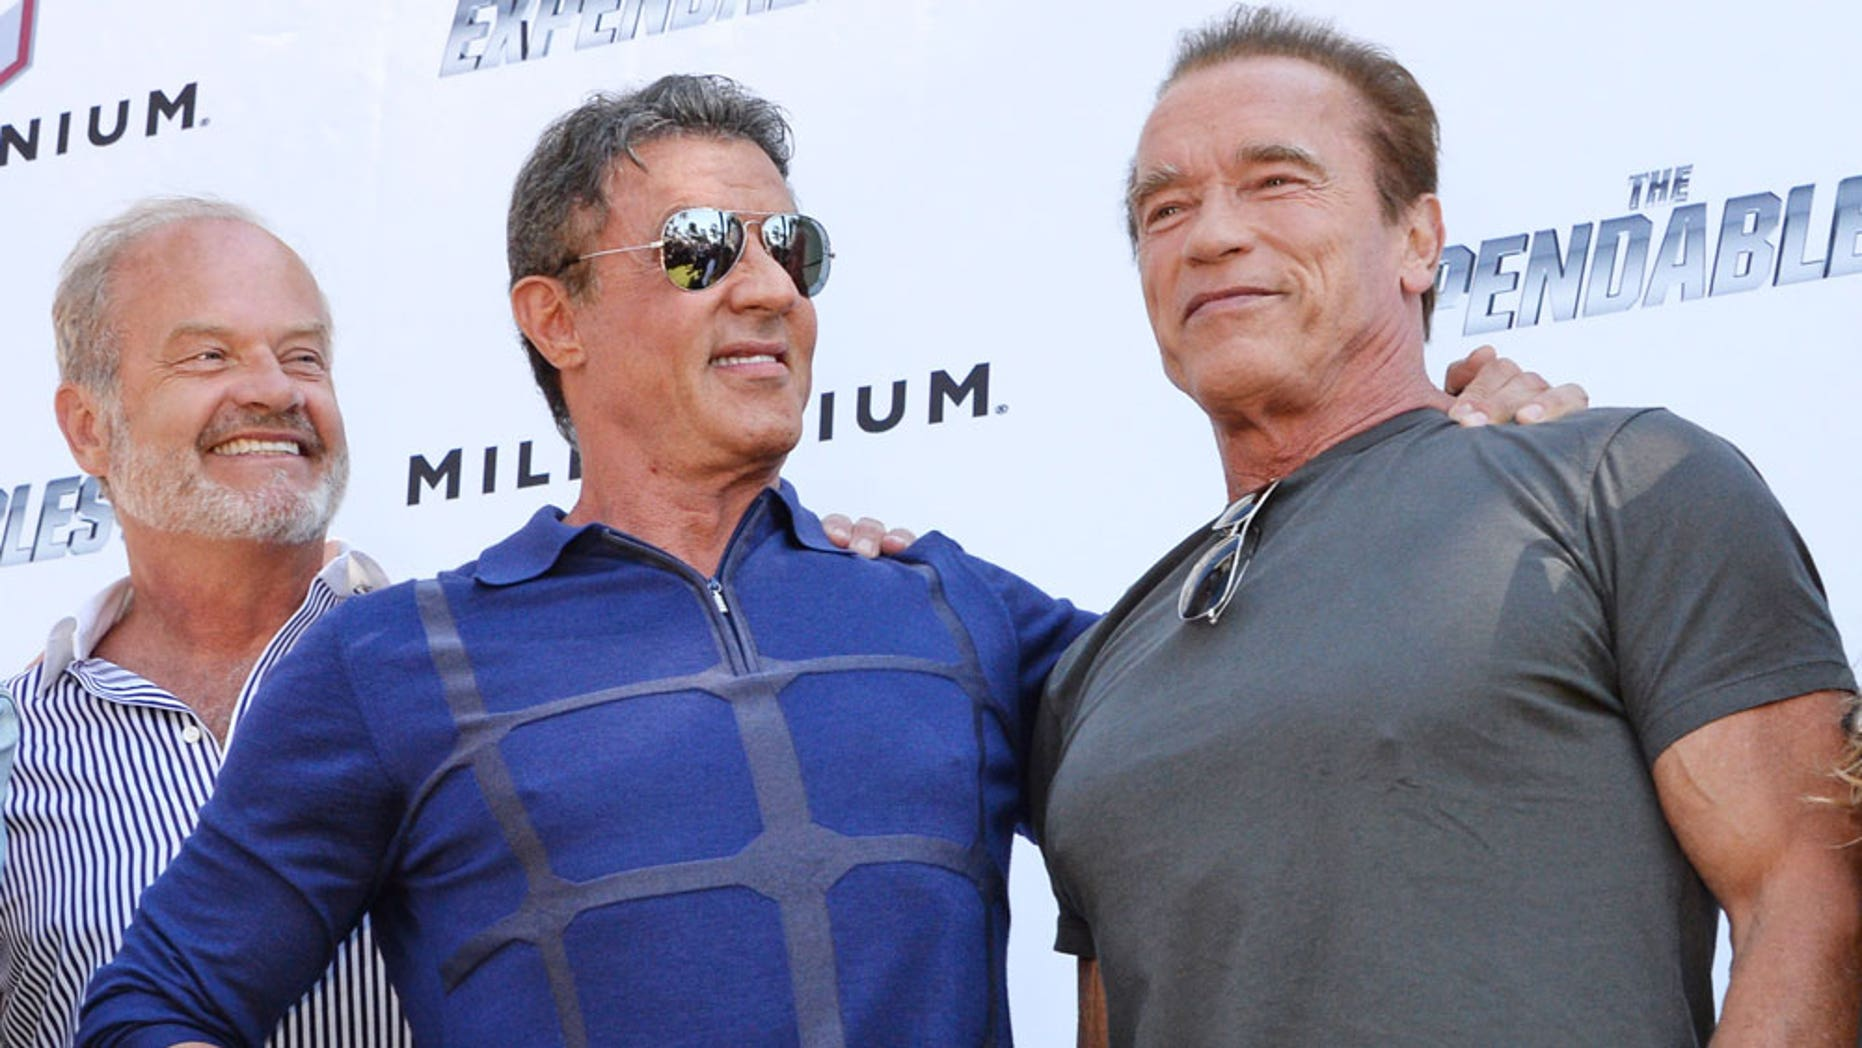 Kelsey Grammer, Sylvester Stallone and Arnold Schwarzenegger who all signed a Hollywood anti-Hamas statement.